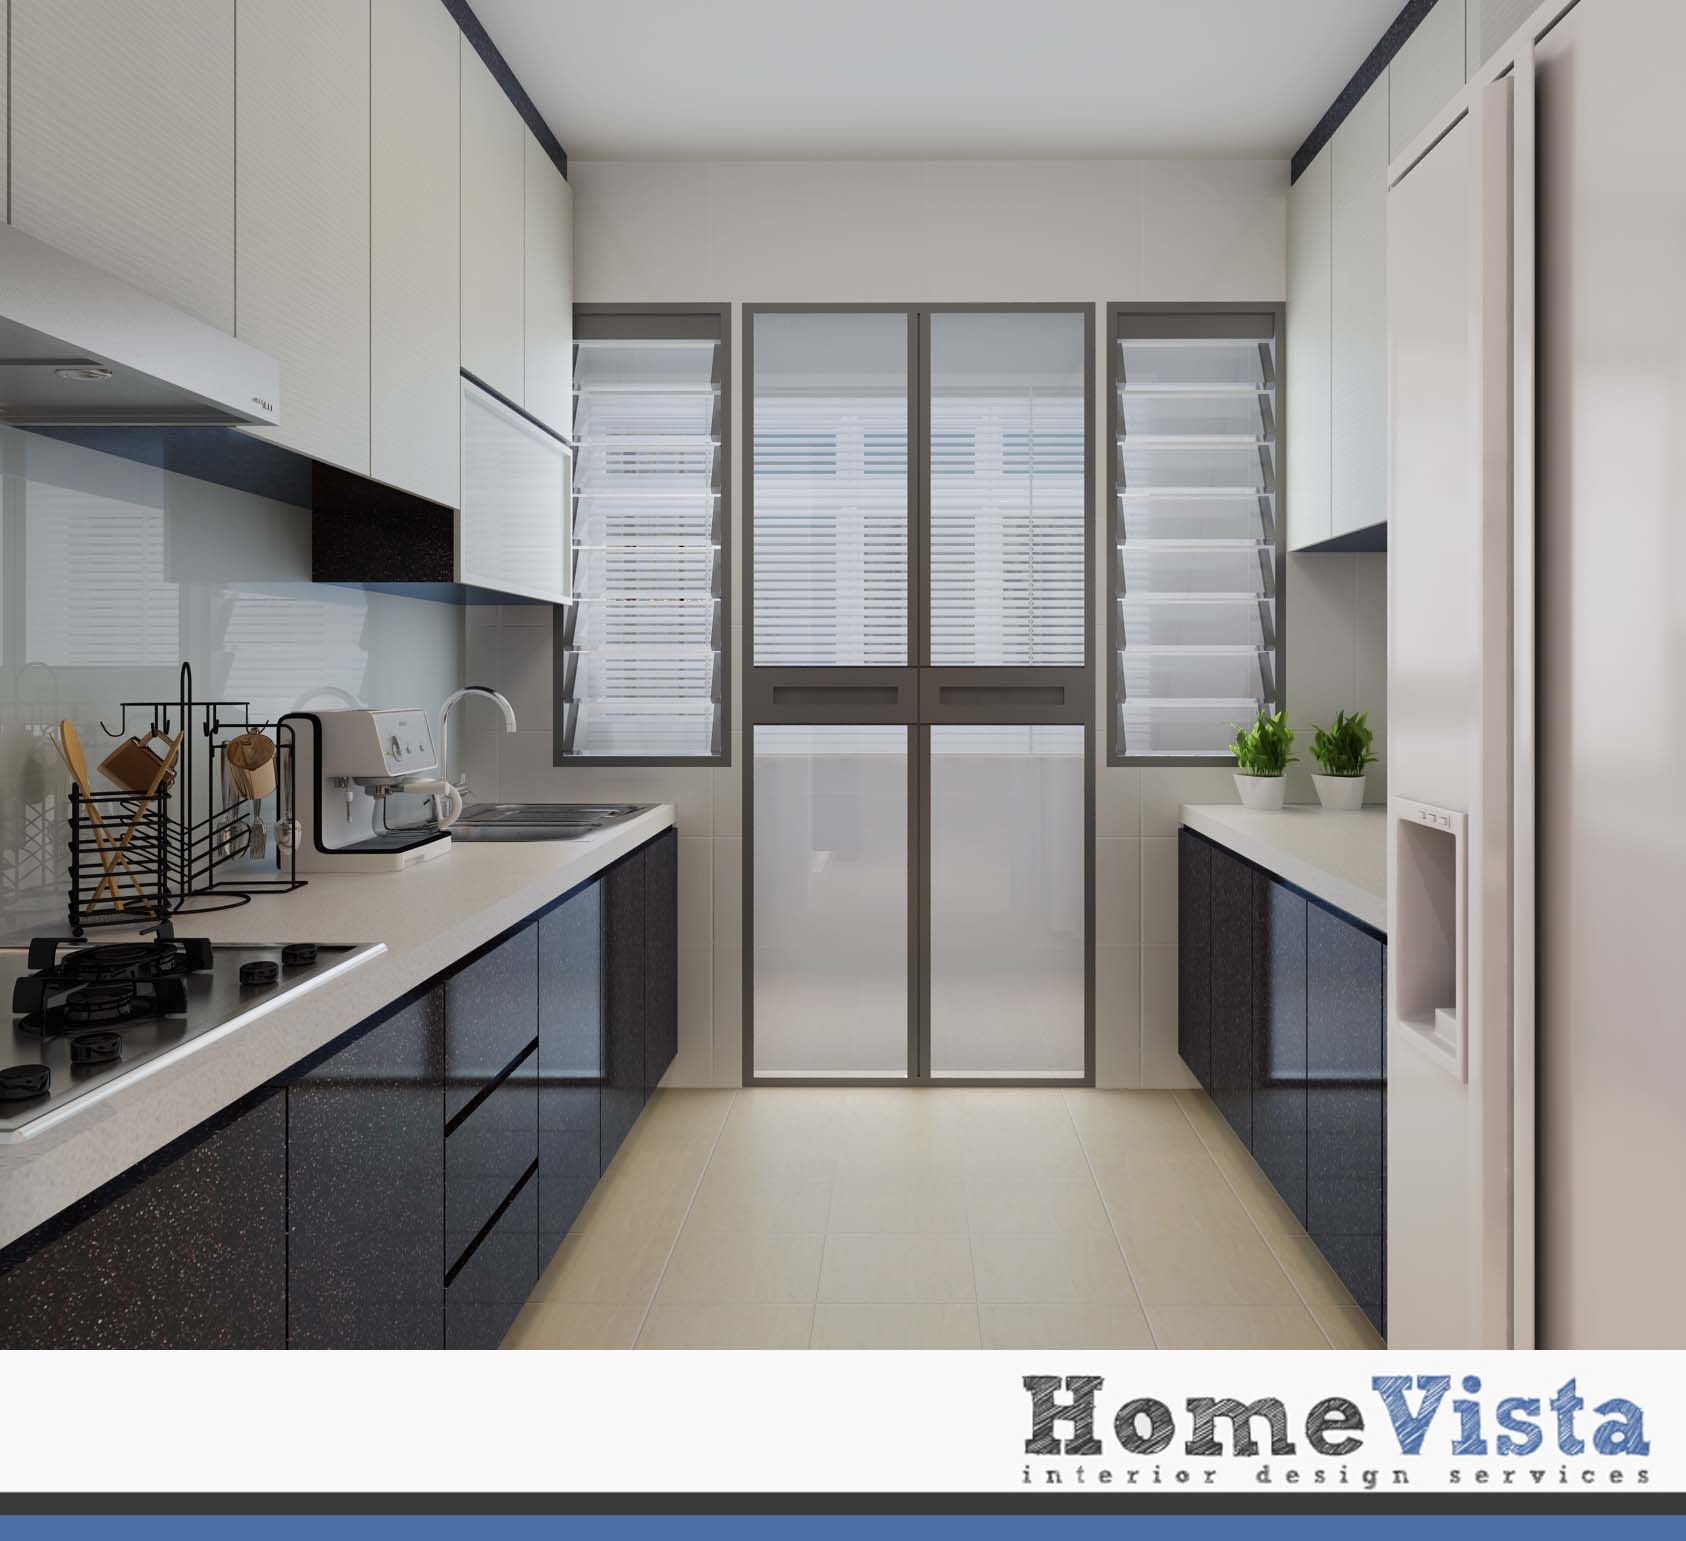 Kitchen Design Houston Captivating 4 Room Bto  Yishun Hdb Bto  Homevista  Interior  Pinterest Design Decoration